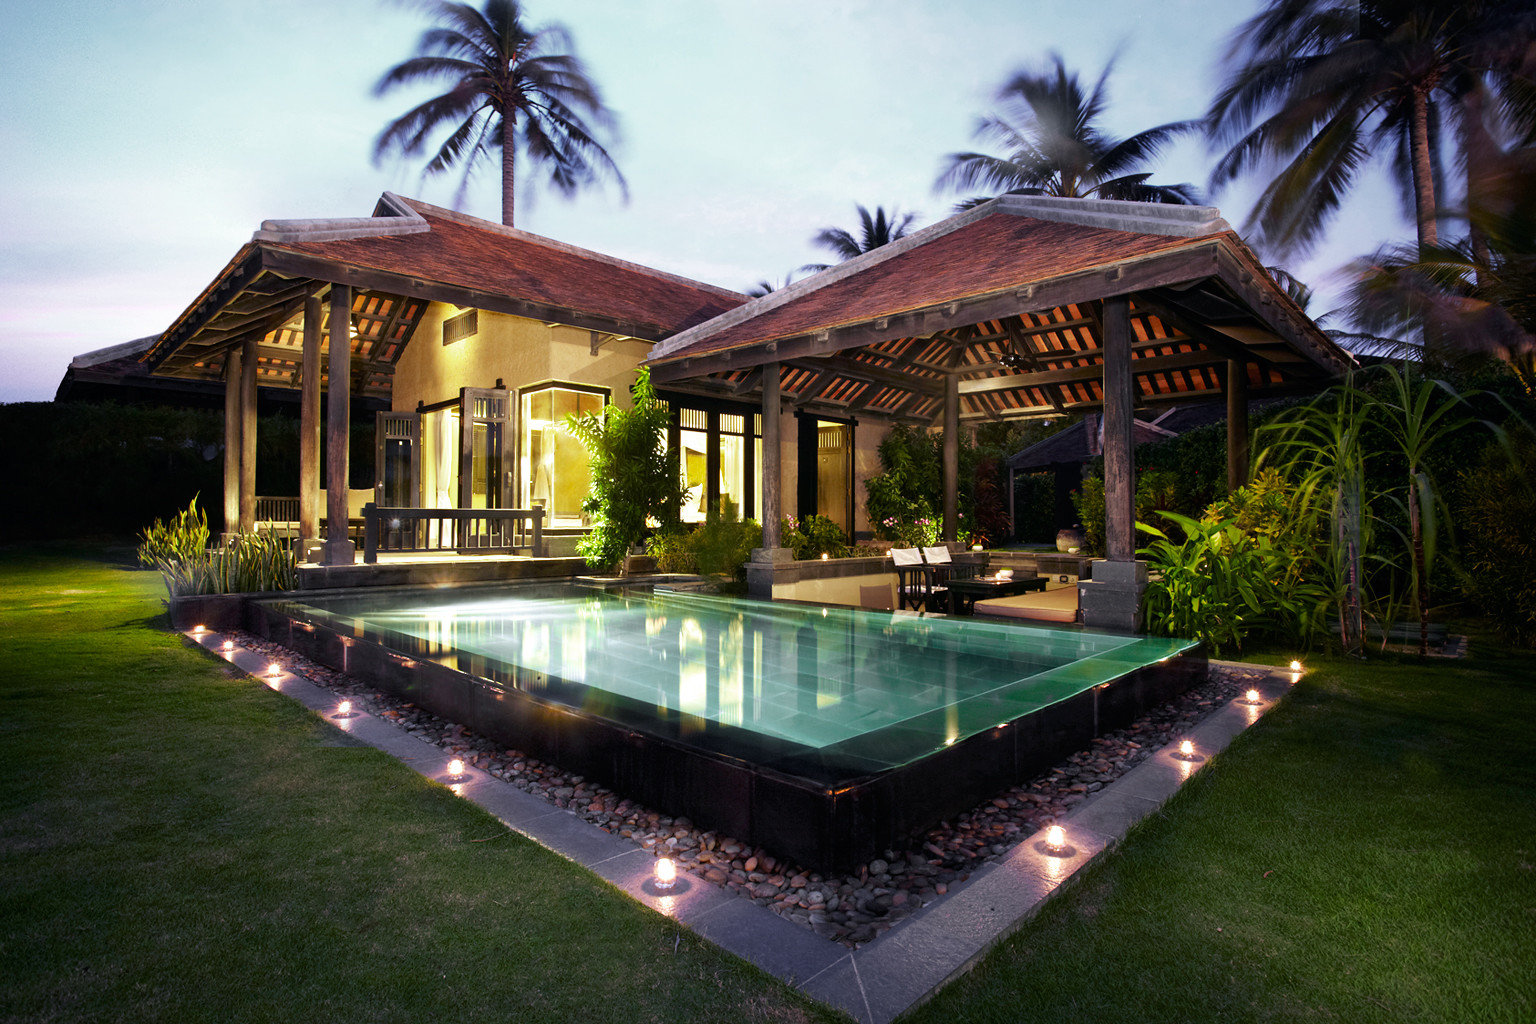 Beachfront Exterior Grounds Jungle Pool Resort Spa Tropical sky swimming pool property house building mansion home Villa backyard landscape lighting